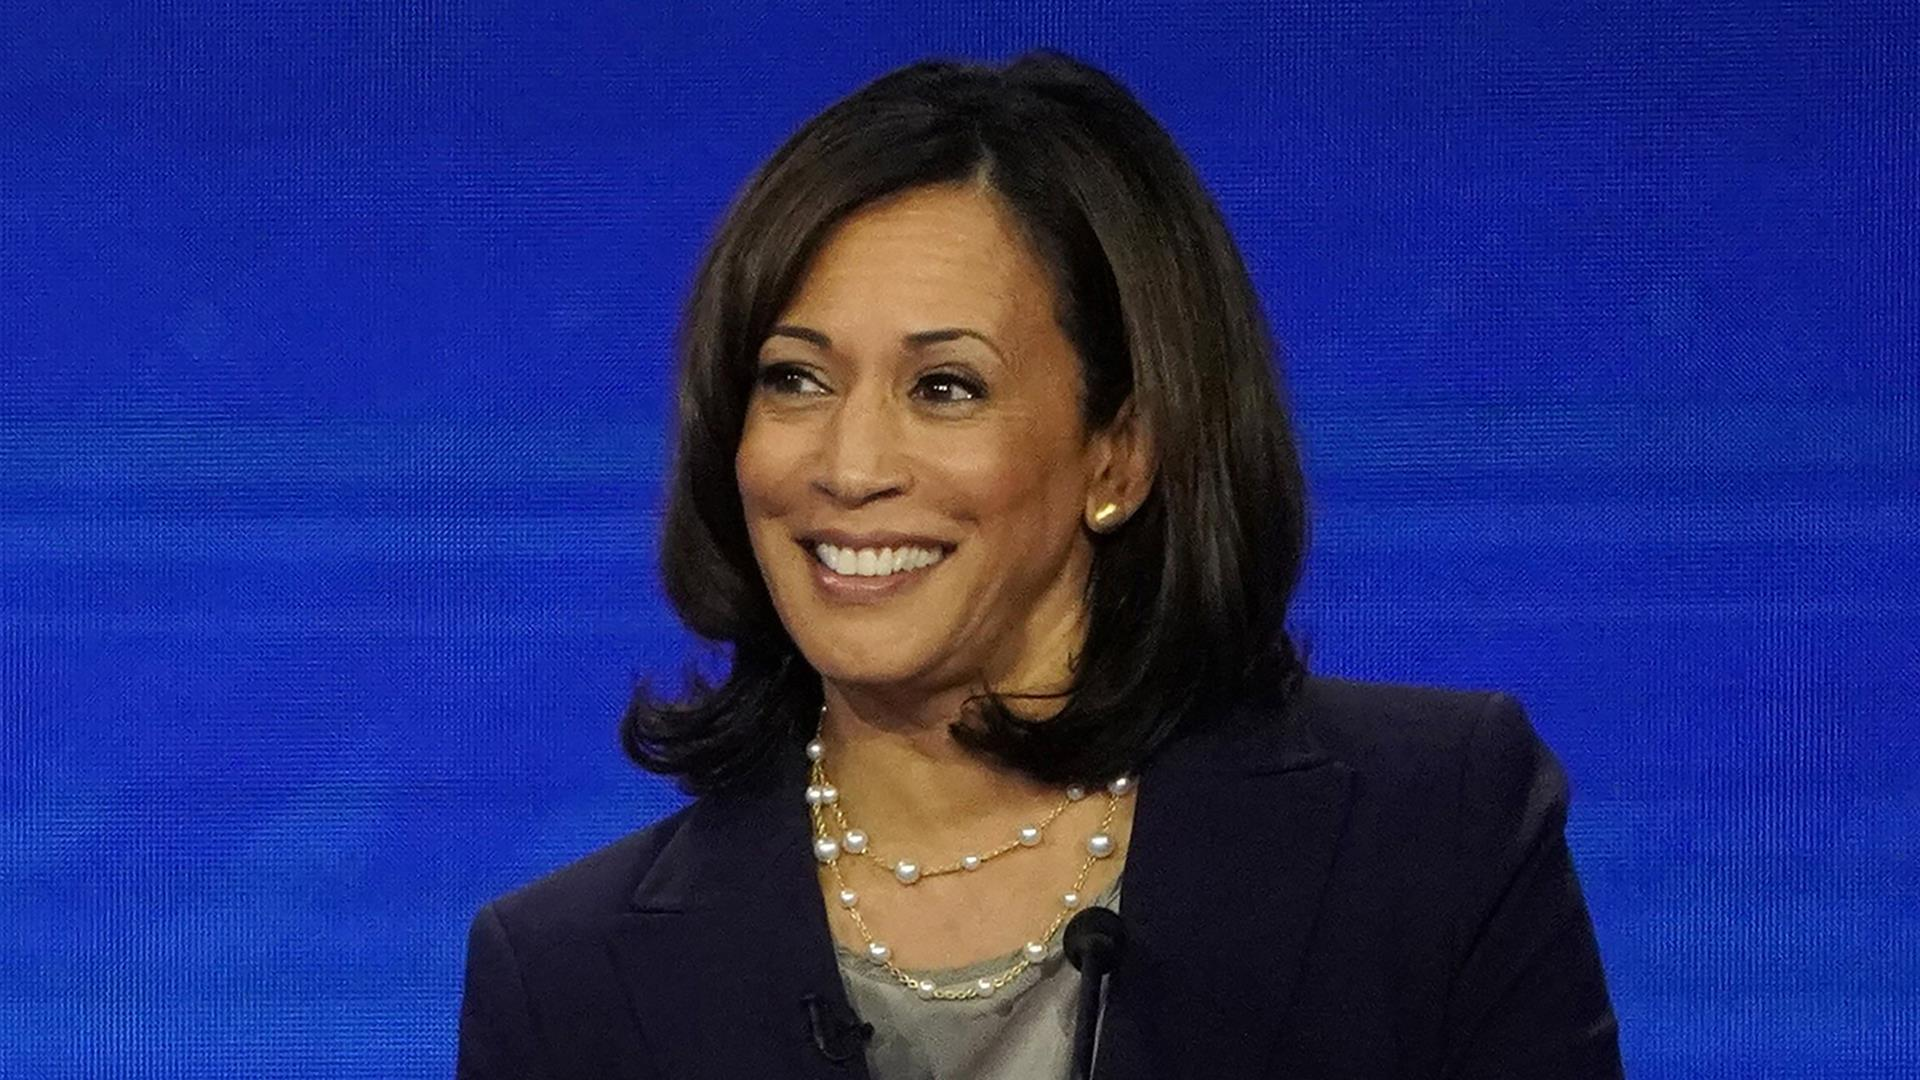 Trump reminds Harris of 'small dude' from 'Wizard of Oz'